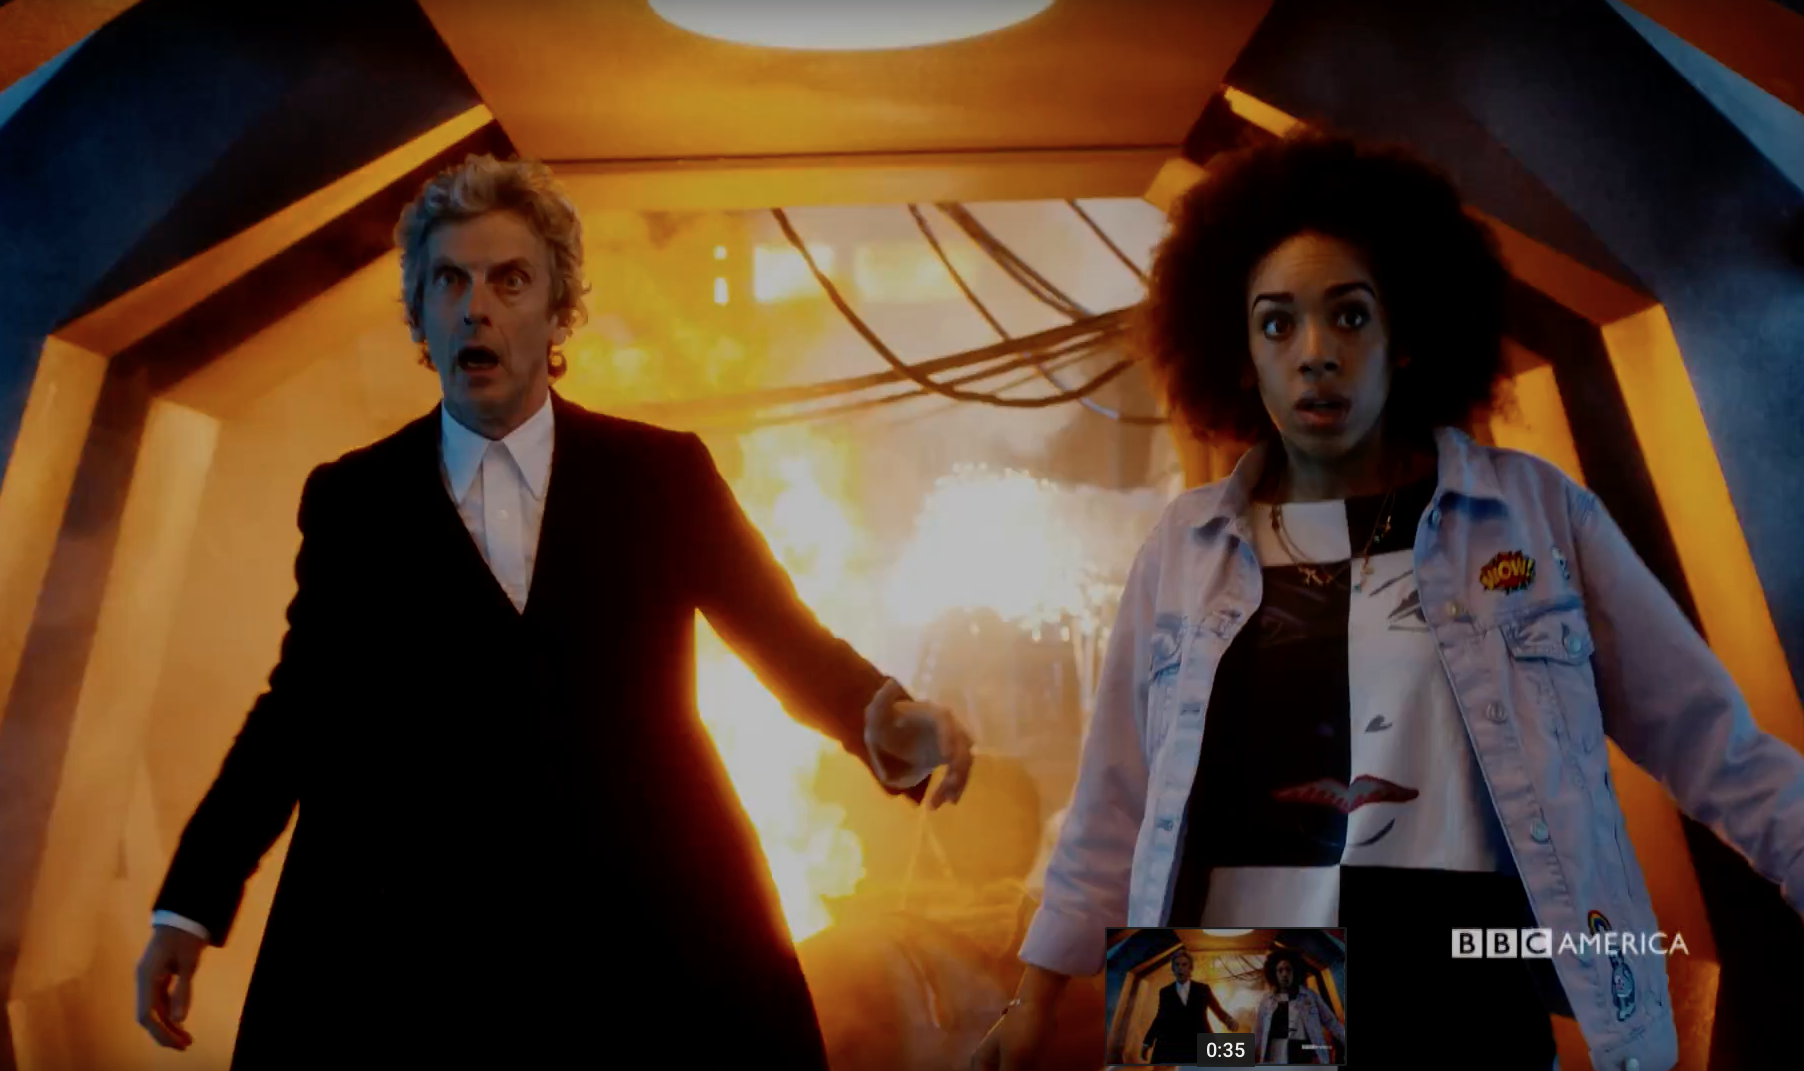 The First Trailer for DOCTOR WHO Season 10 Has Finally Arrived